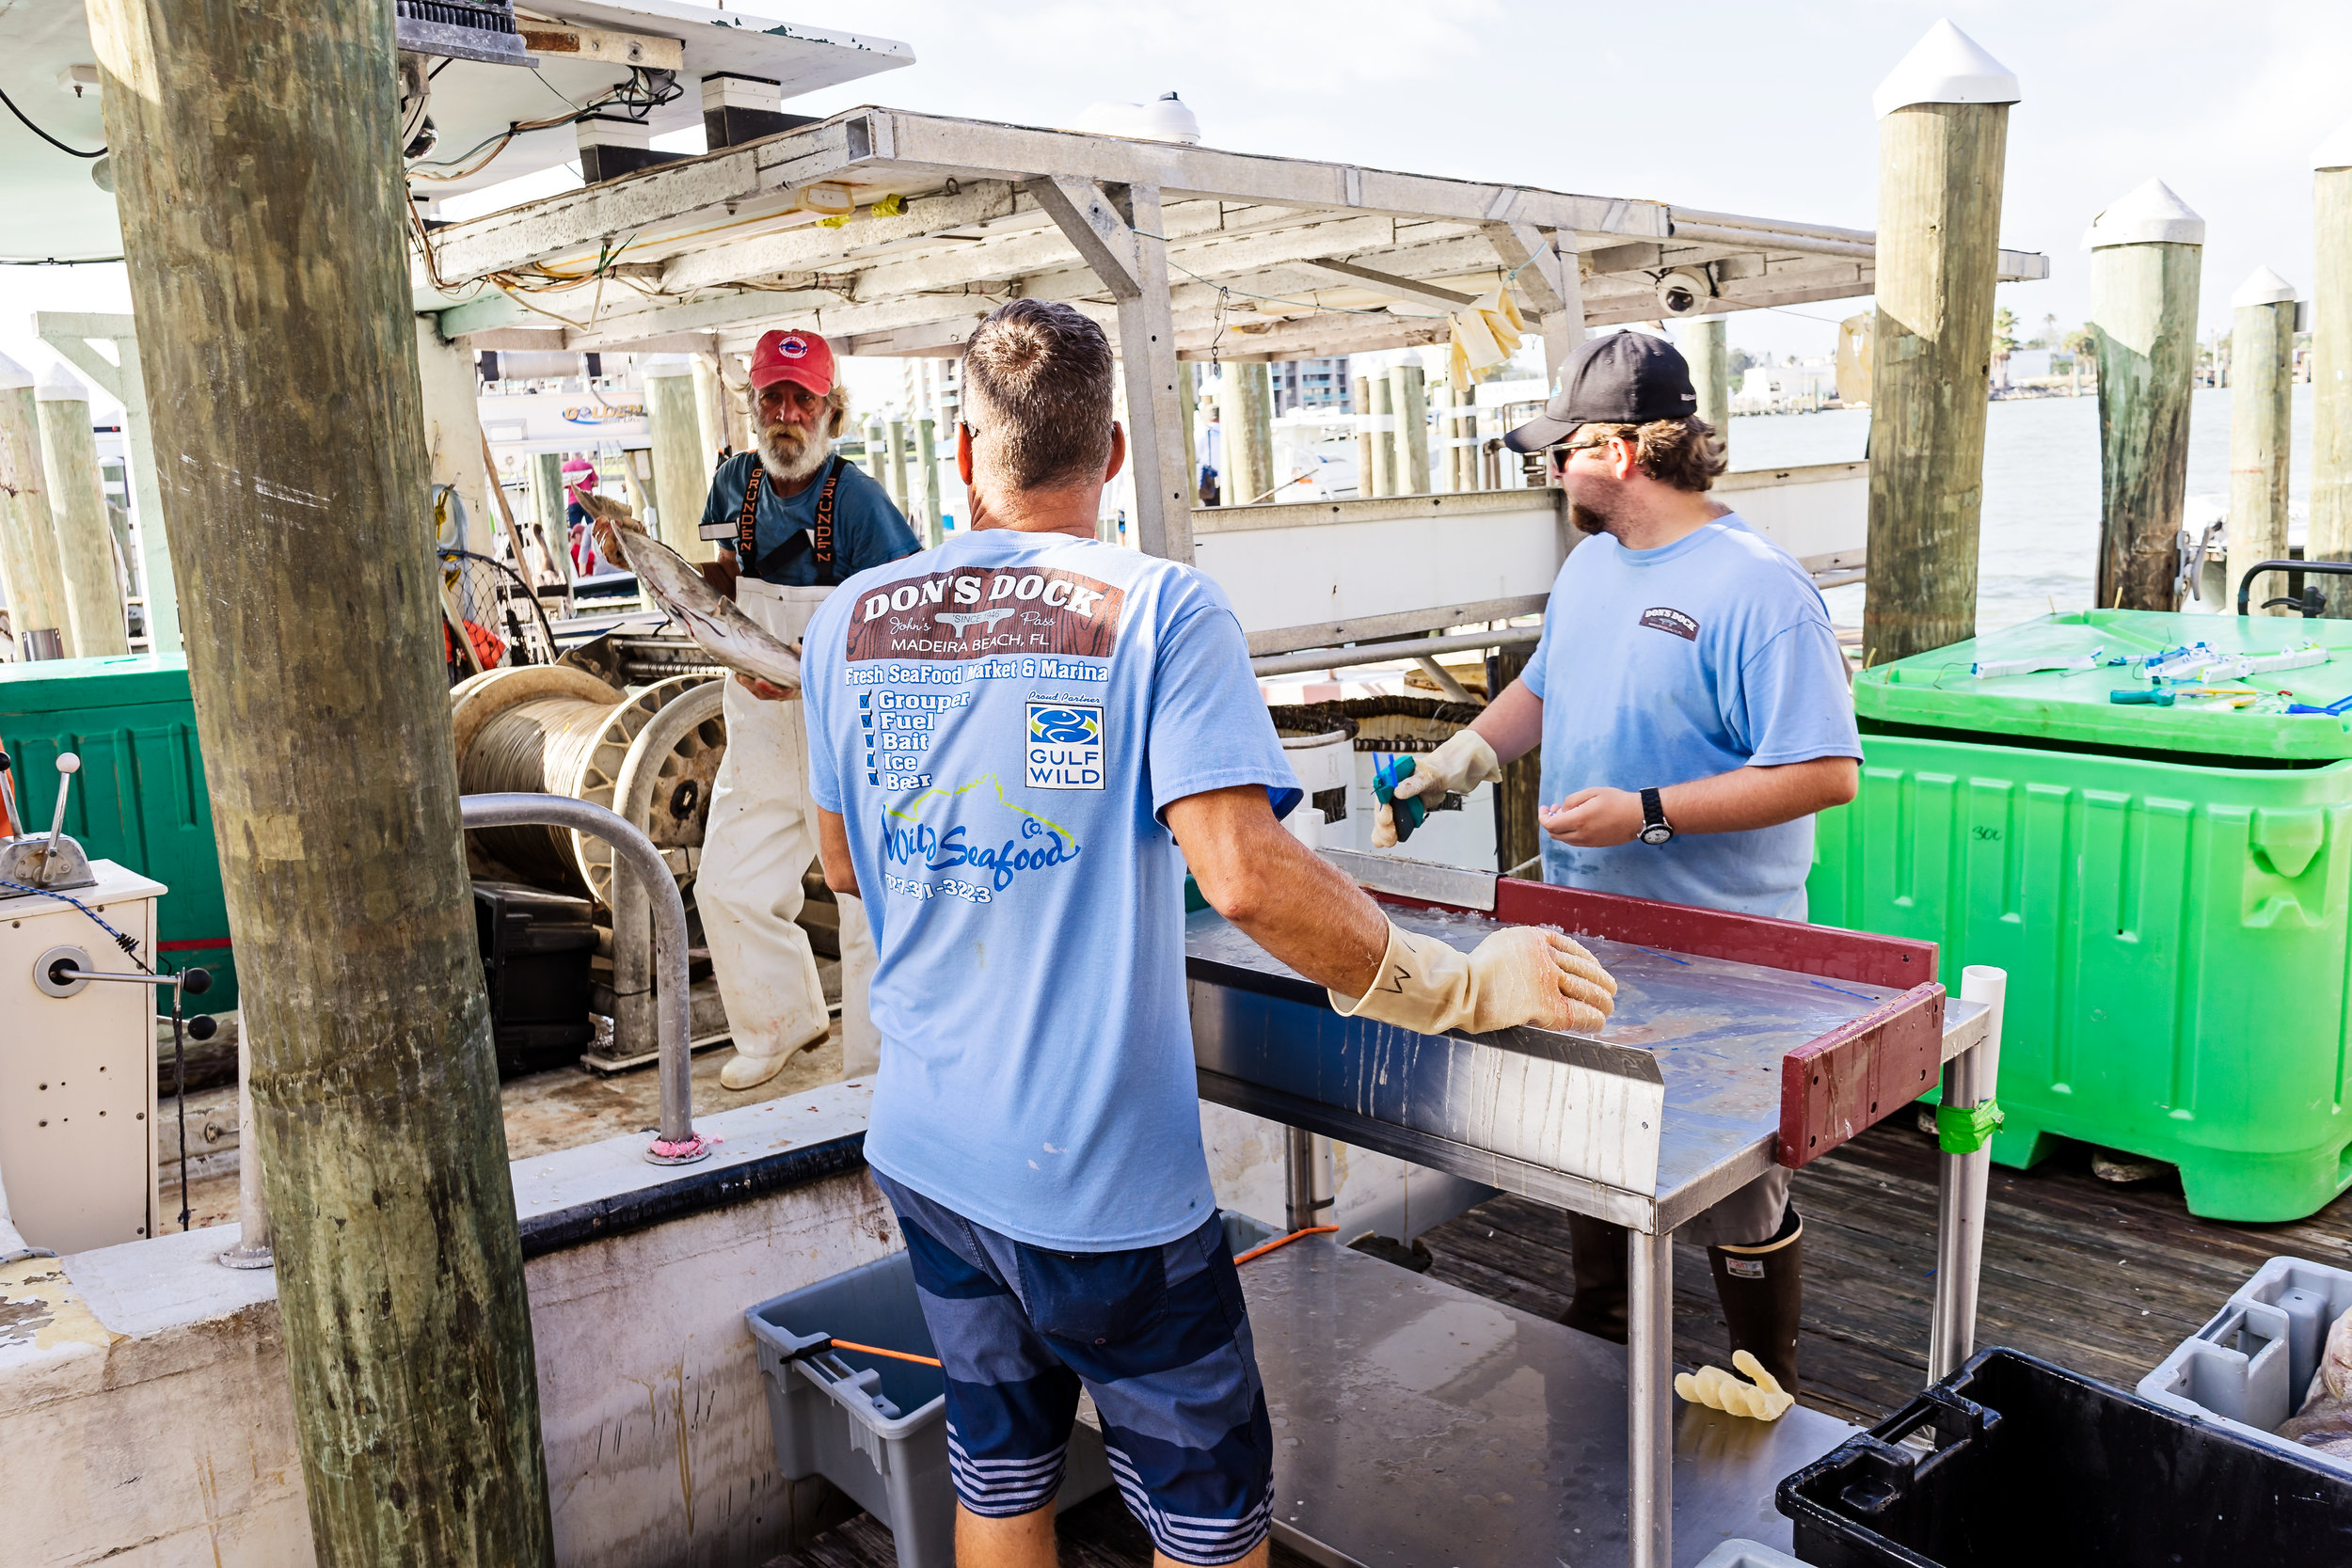 Chris Zook and Tyler Lavrinc sorting and tagging the fish as it comes off the boat.